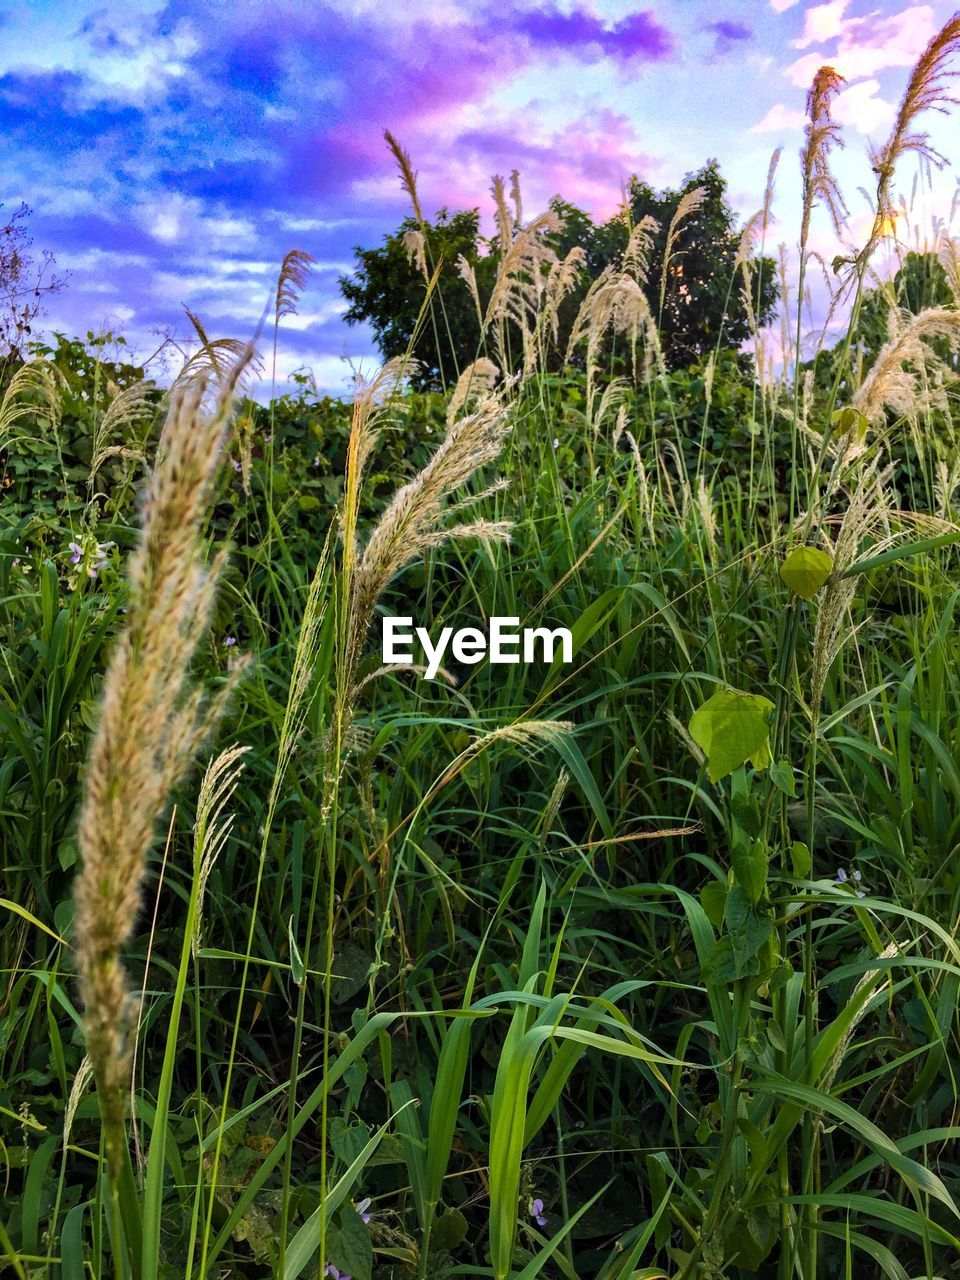 plant, growth, sky, field, nature, beauty in nature, cloud - sky, land, no people, day, grass, tranquility, agriculture, crop, cereal plant, green color, close-up, environment, outdoors, tranquil scene, plantation